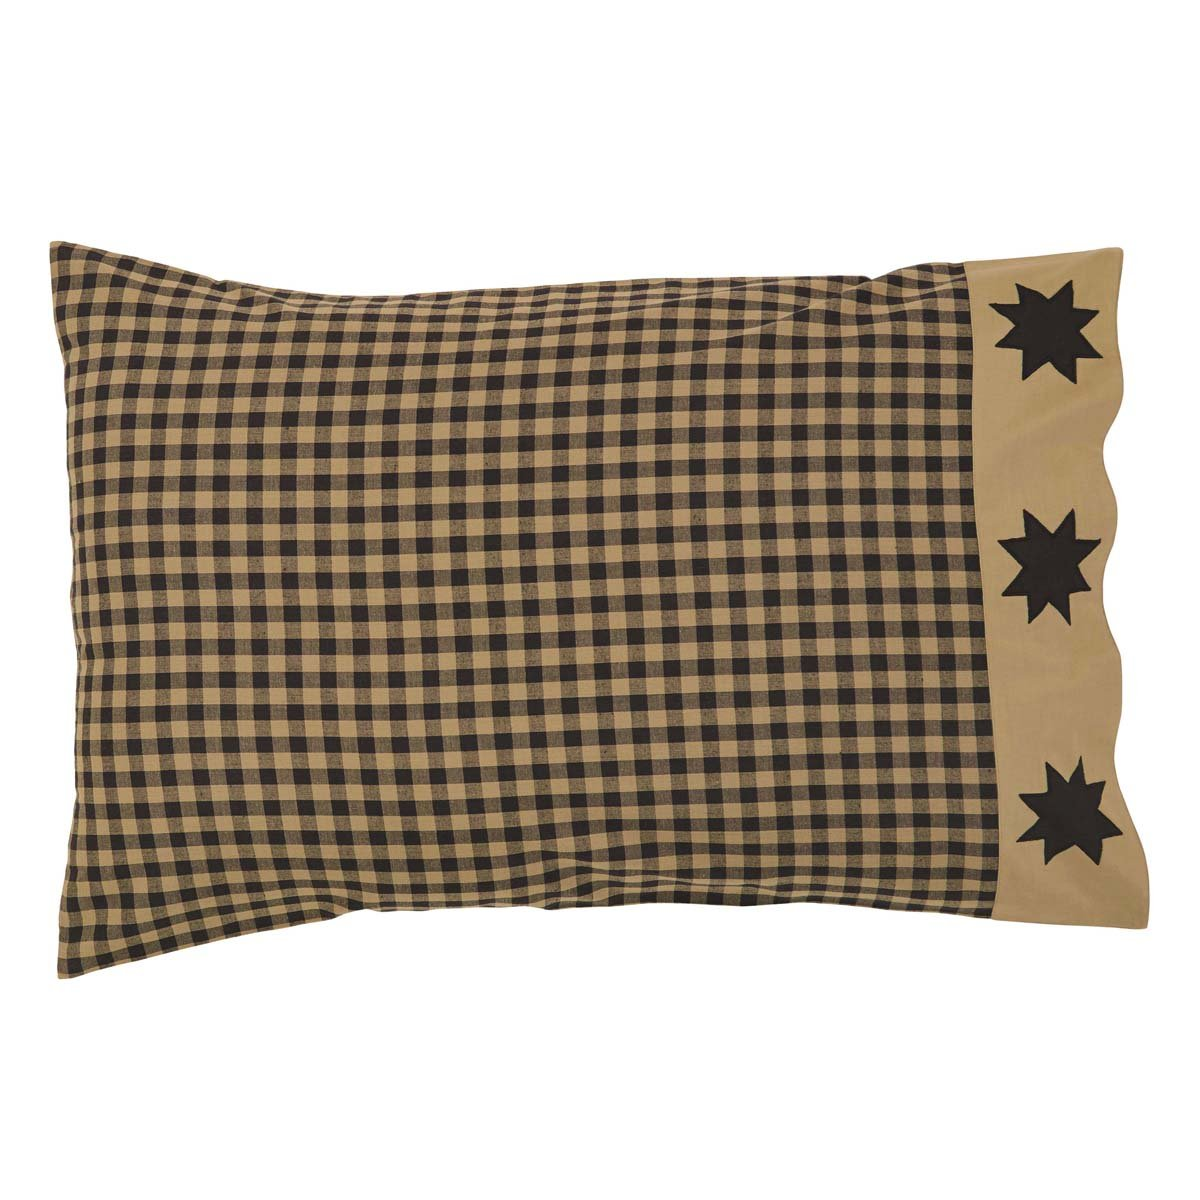 Dakota Star Primitive Country Patchwork Pillow Cases